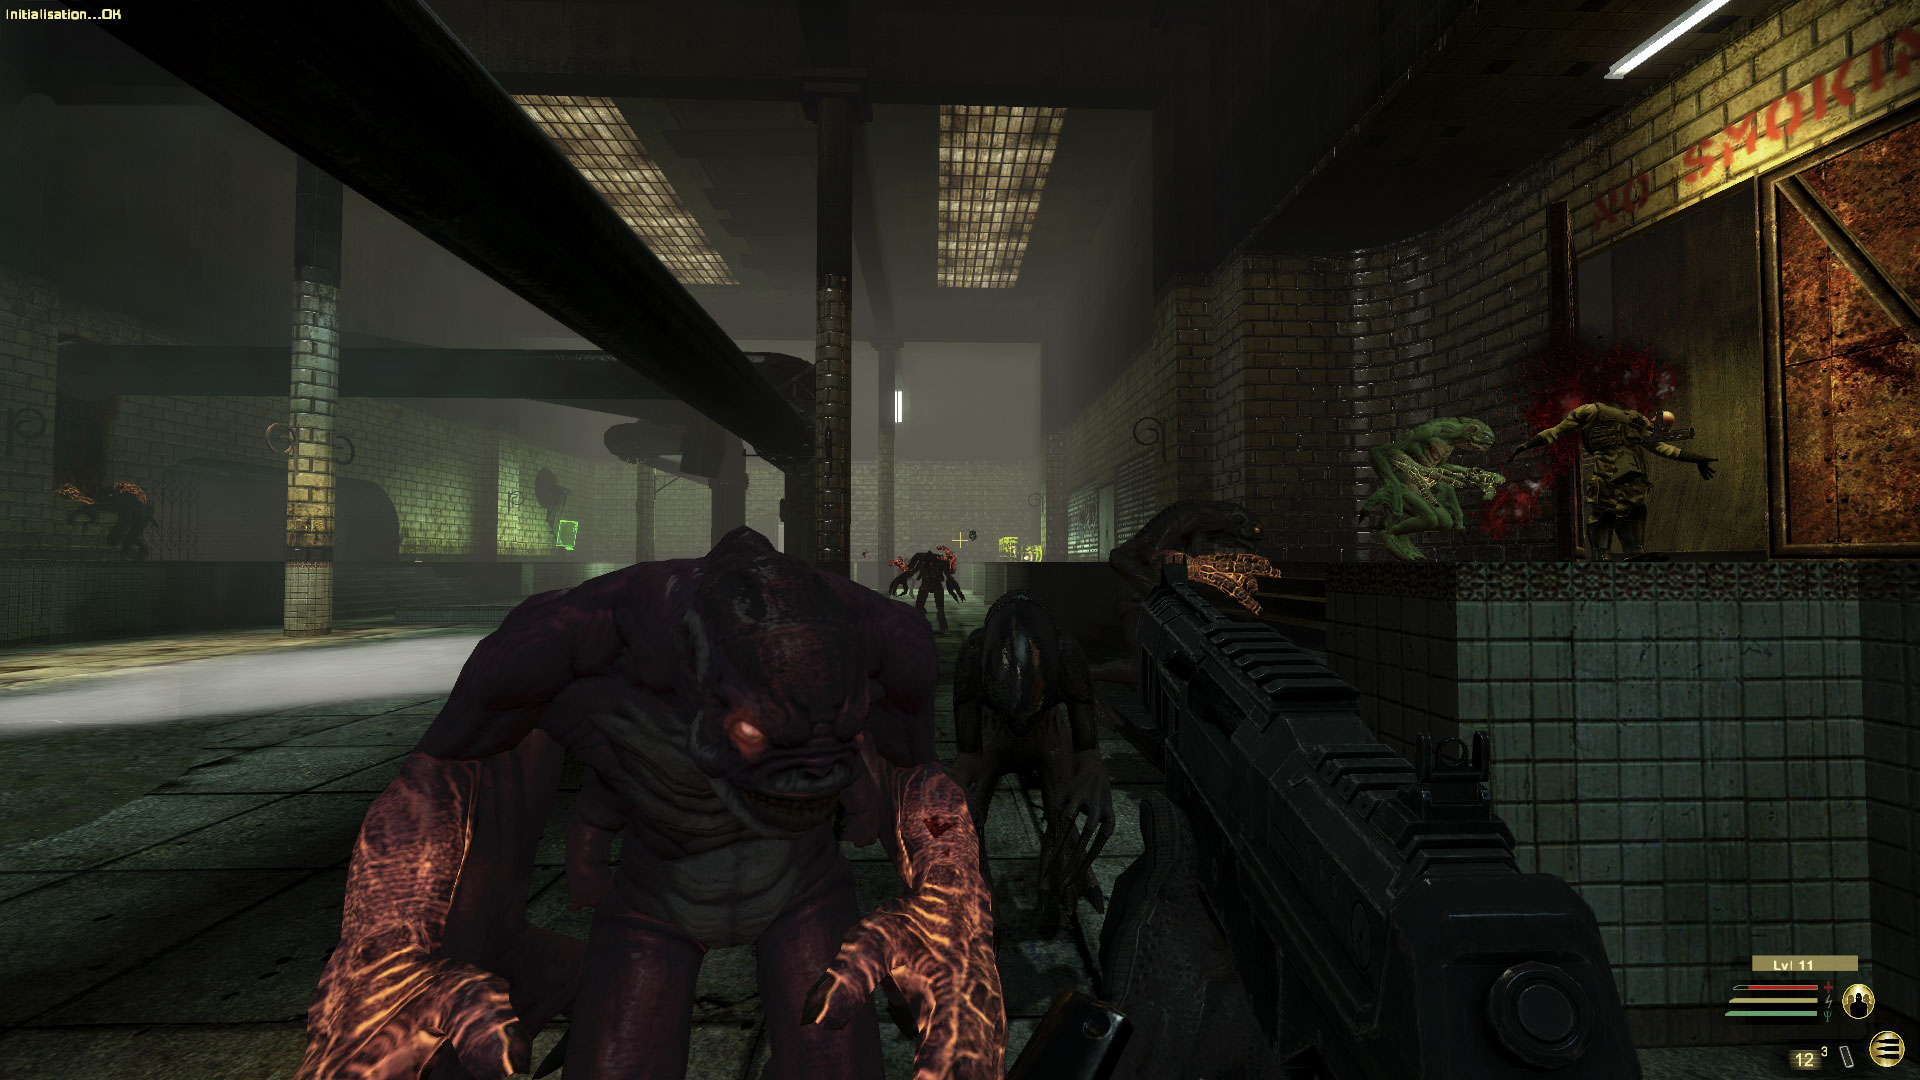 E.Y.E screenshot